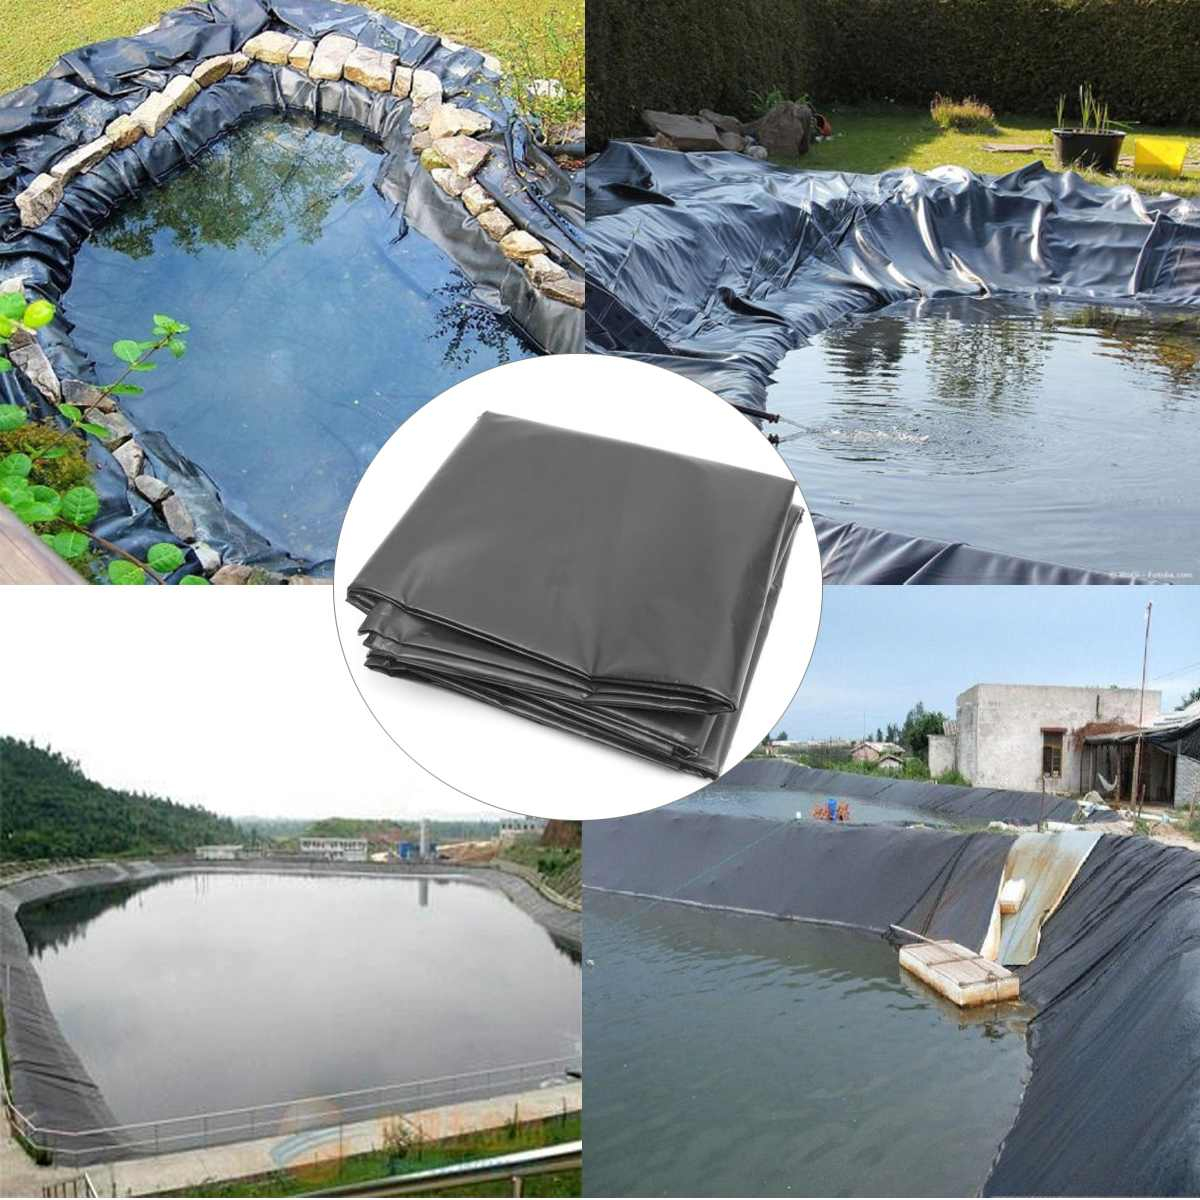 Us $84.86 45% Off|Big Hdpe Fish Pond Liner Waterproof Membrane Garden Pond  Landscaping Pool Thick Liner 8X14M / 8X12M / 8X10M / 8X8M / 8X6M/ 8X4M-In  ... serapportantà Piscine Geomembrane